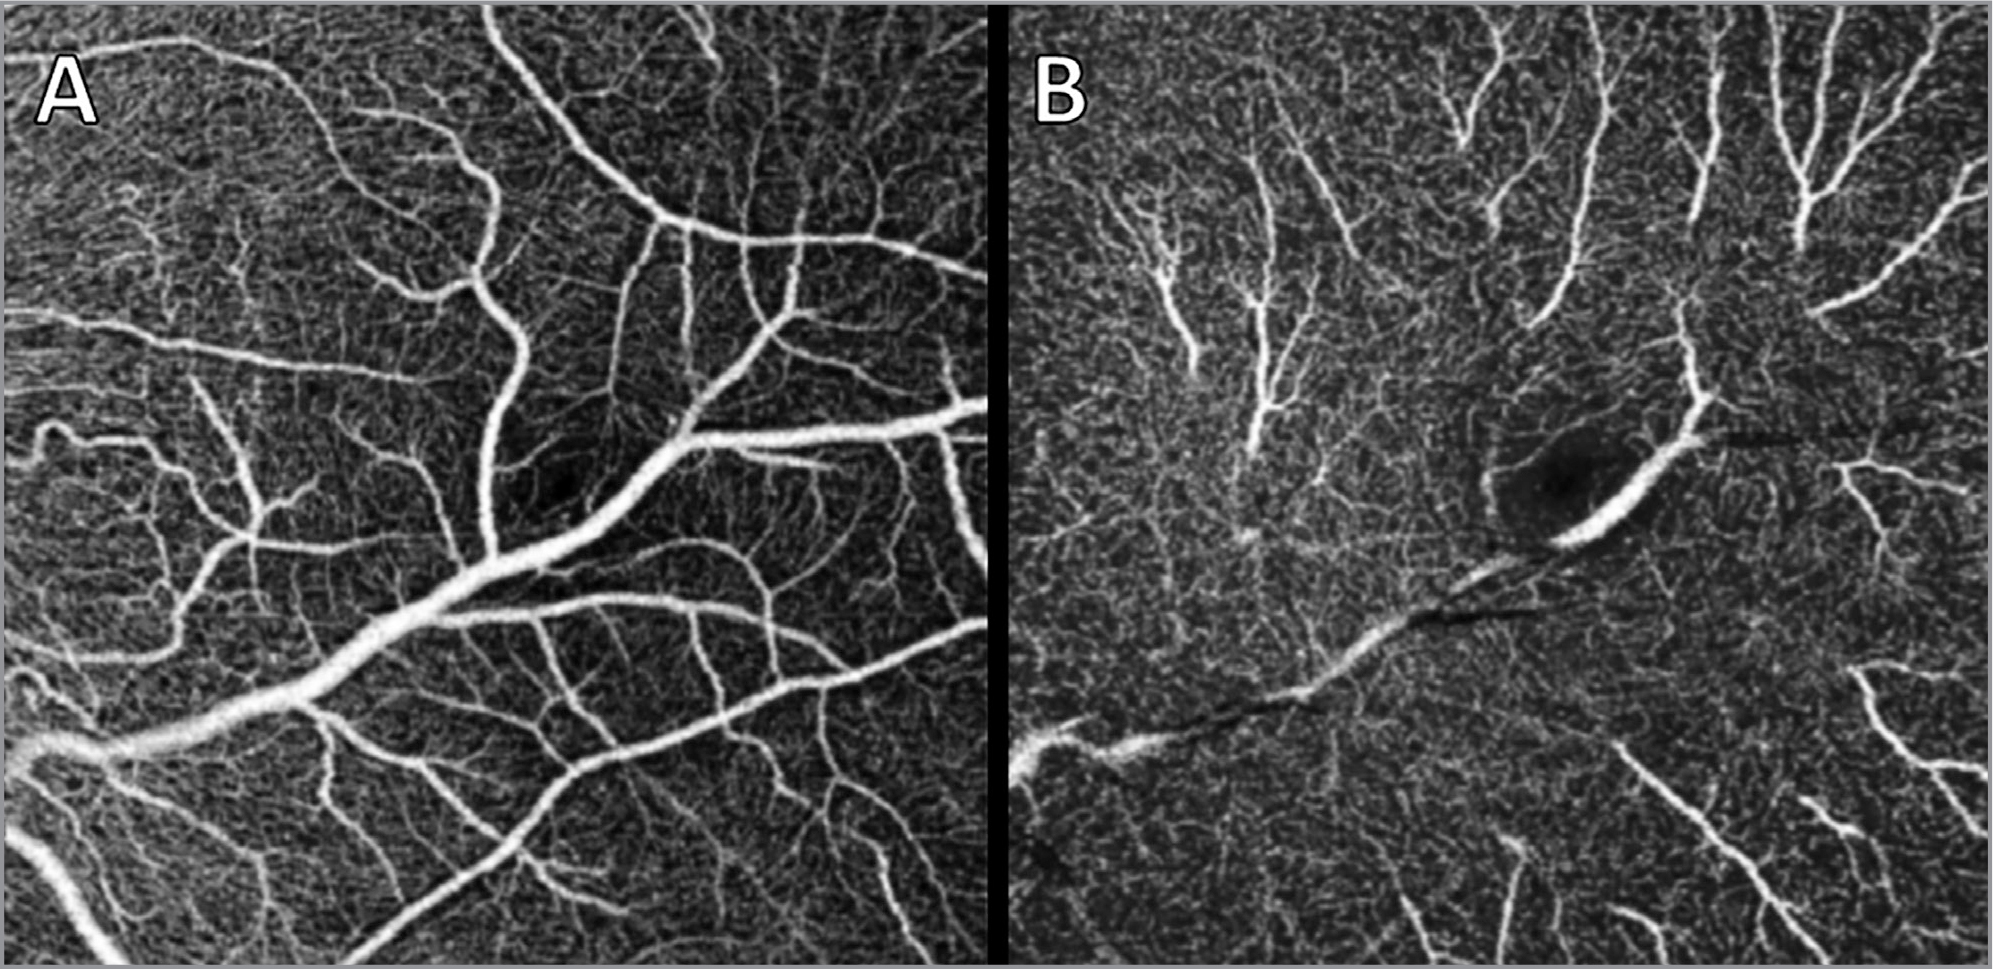 Swept-source optical coherence tomography angiography of the left eye showing an anomalous retinal macrovessel penetrating the superficial capillary plexus (A) and deep capillary plexus (B).